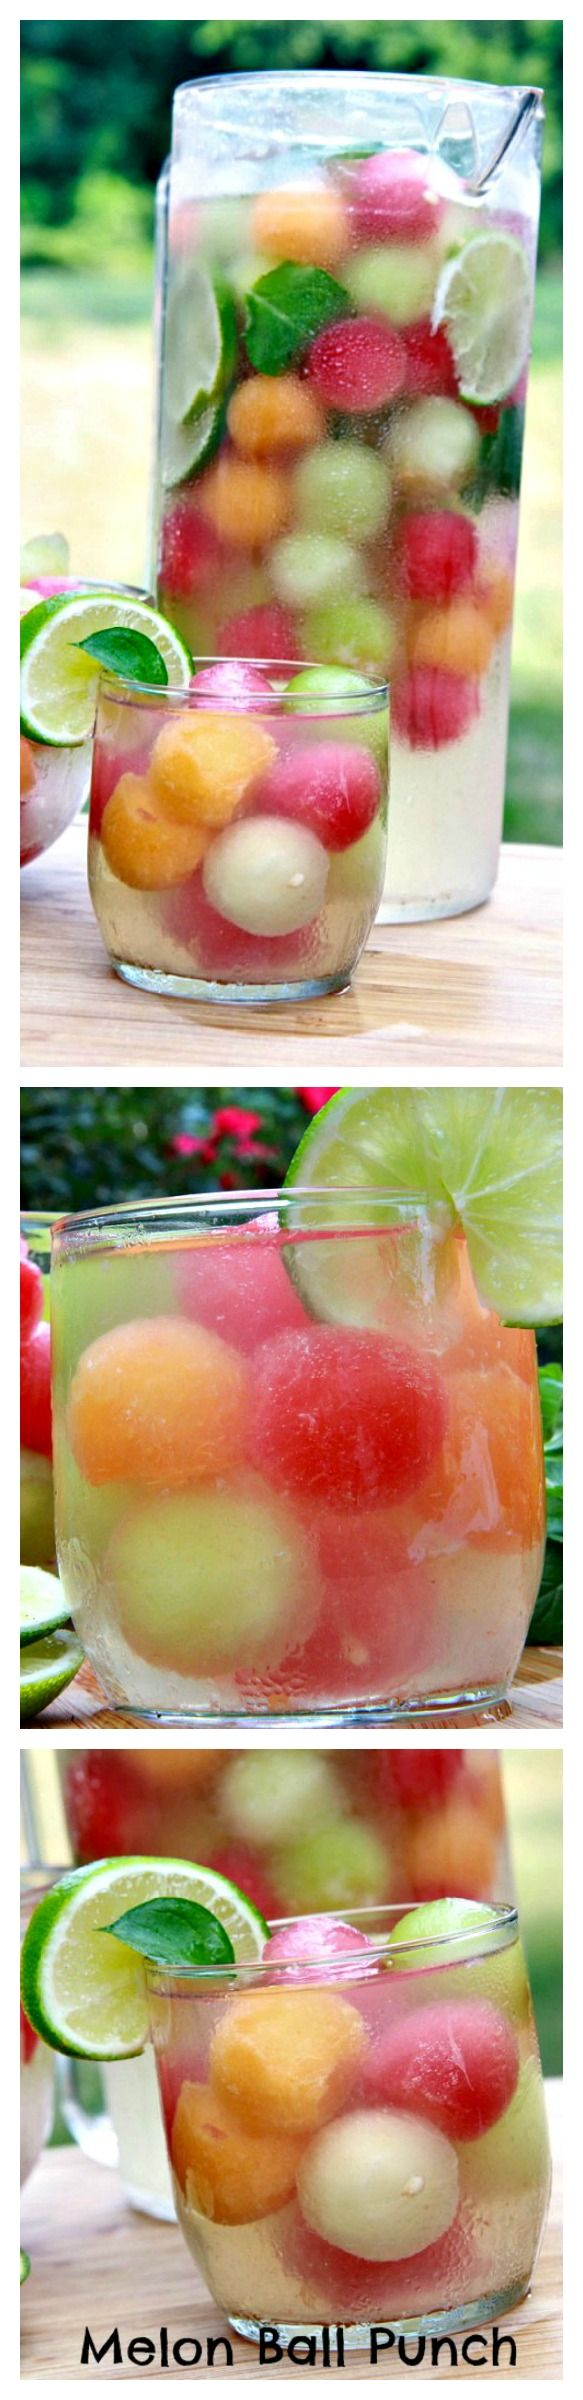 Refreshing Melon Ball Punch by ifoodtv: Summertime! #Punch #Melon_Ball #Healthy #Light